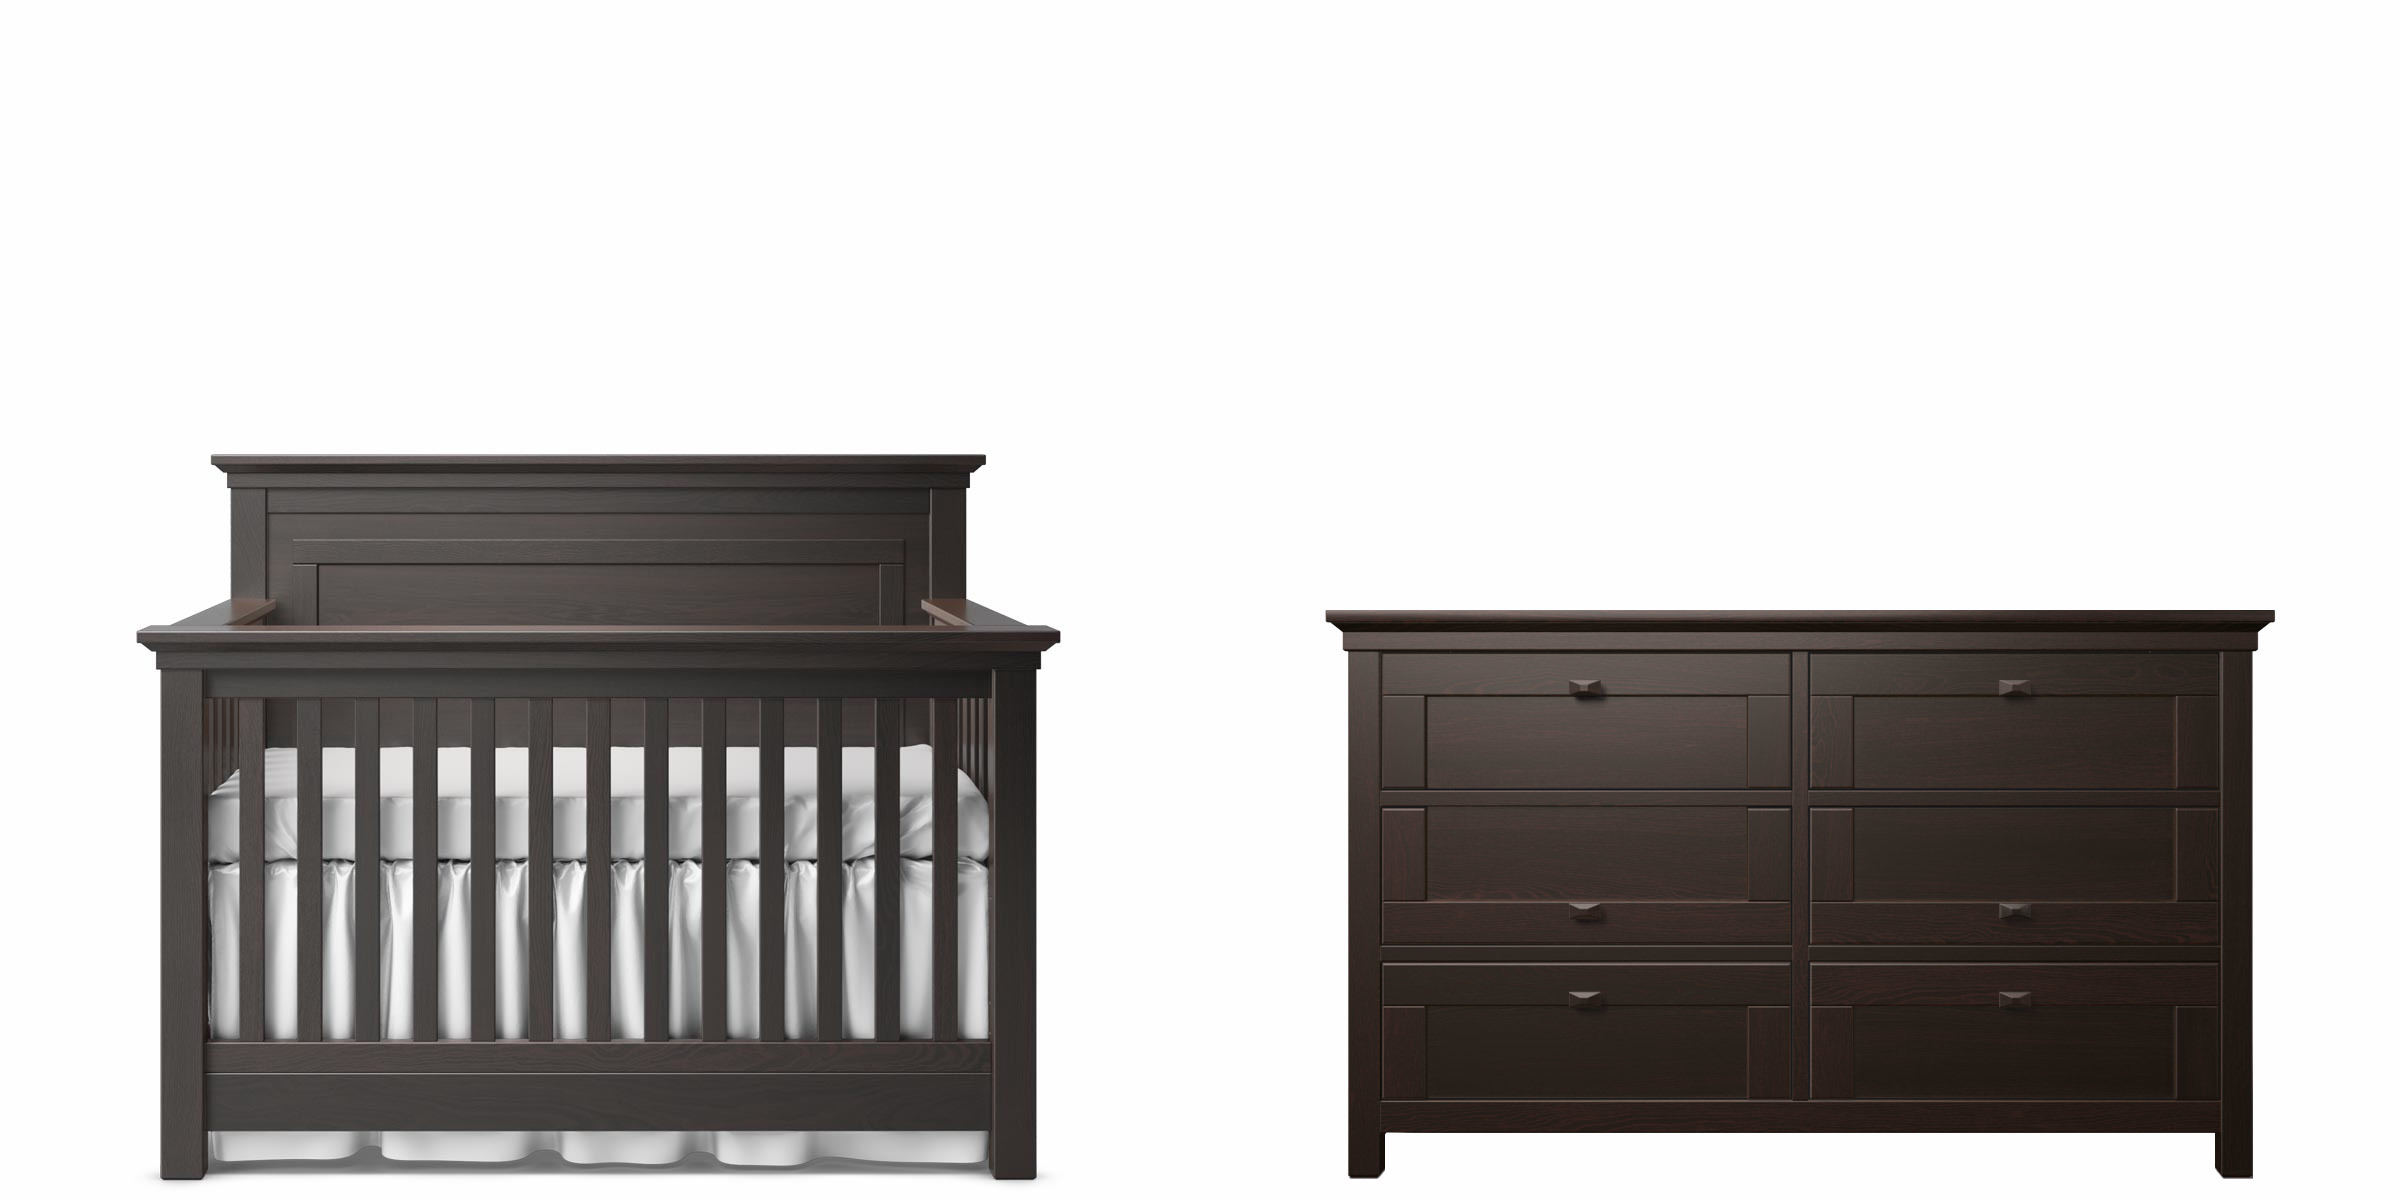 Romina Karisma Panel Crib and Double Dresser - Espresso